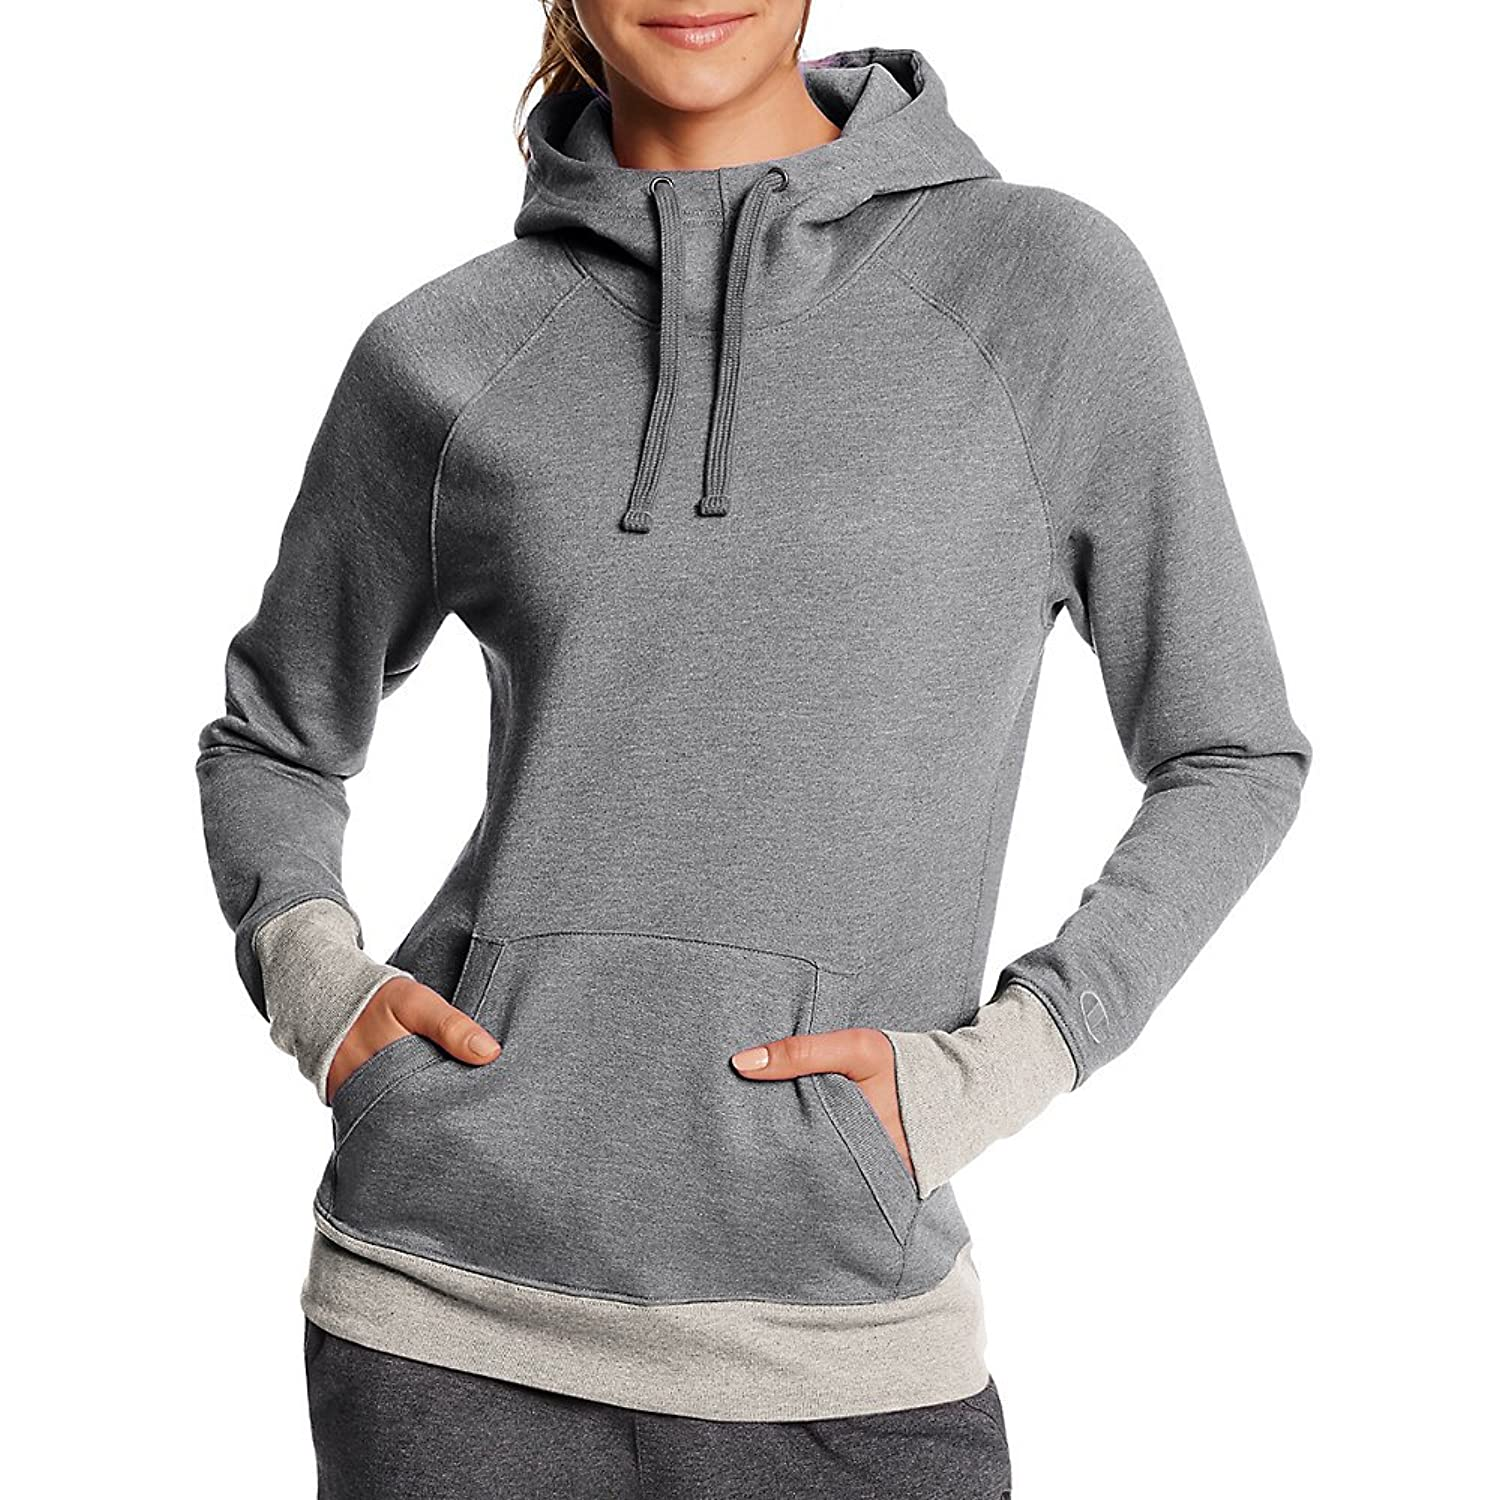 Hoodie Amazon Raveitsafe Repeat Sweatshirt Eco Champion CxBode